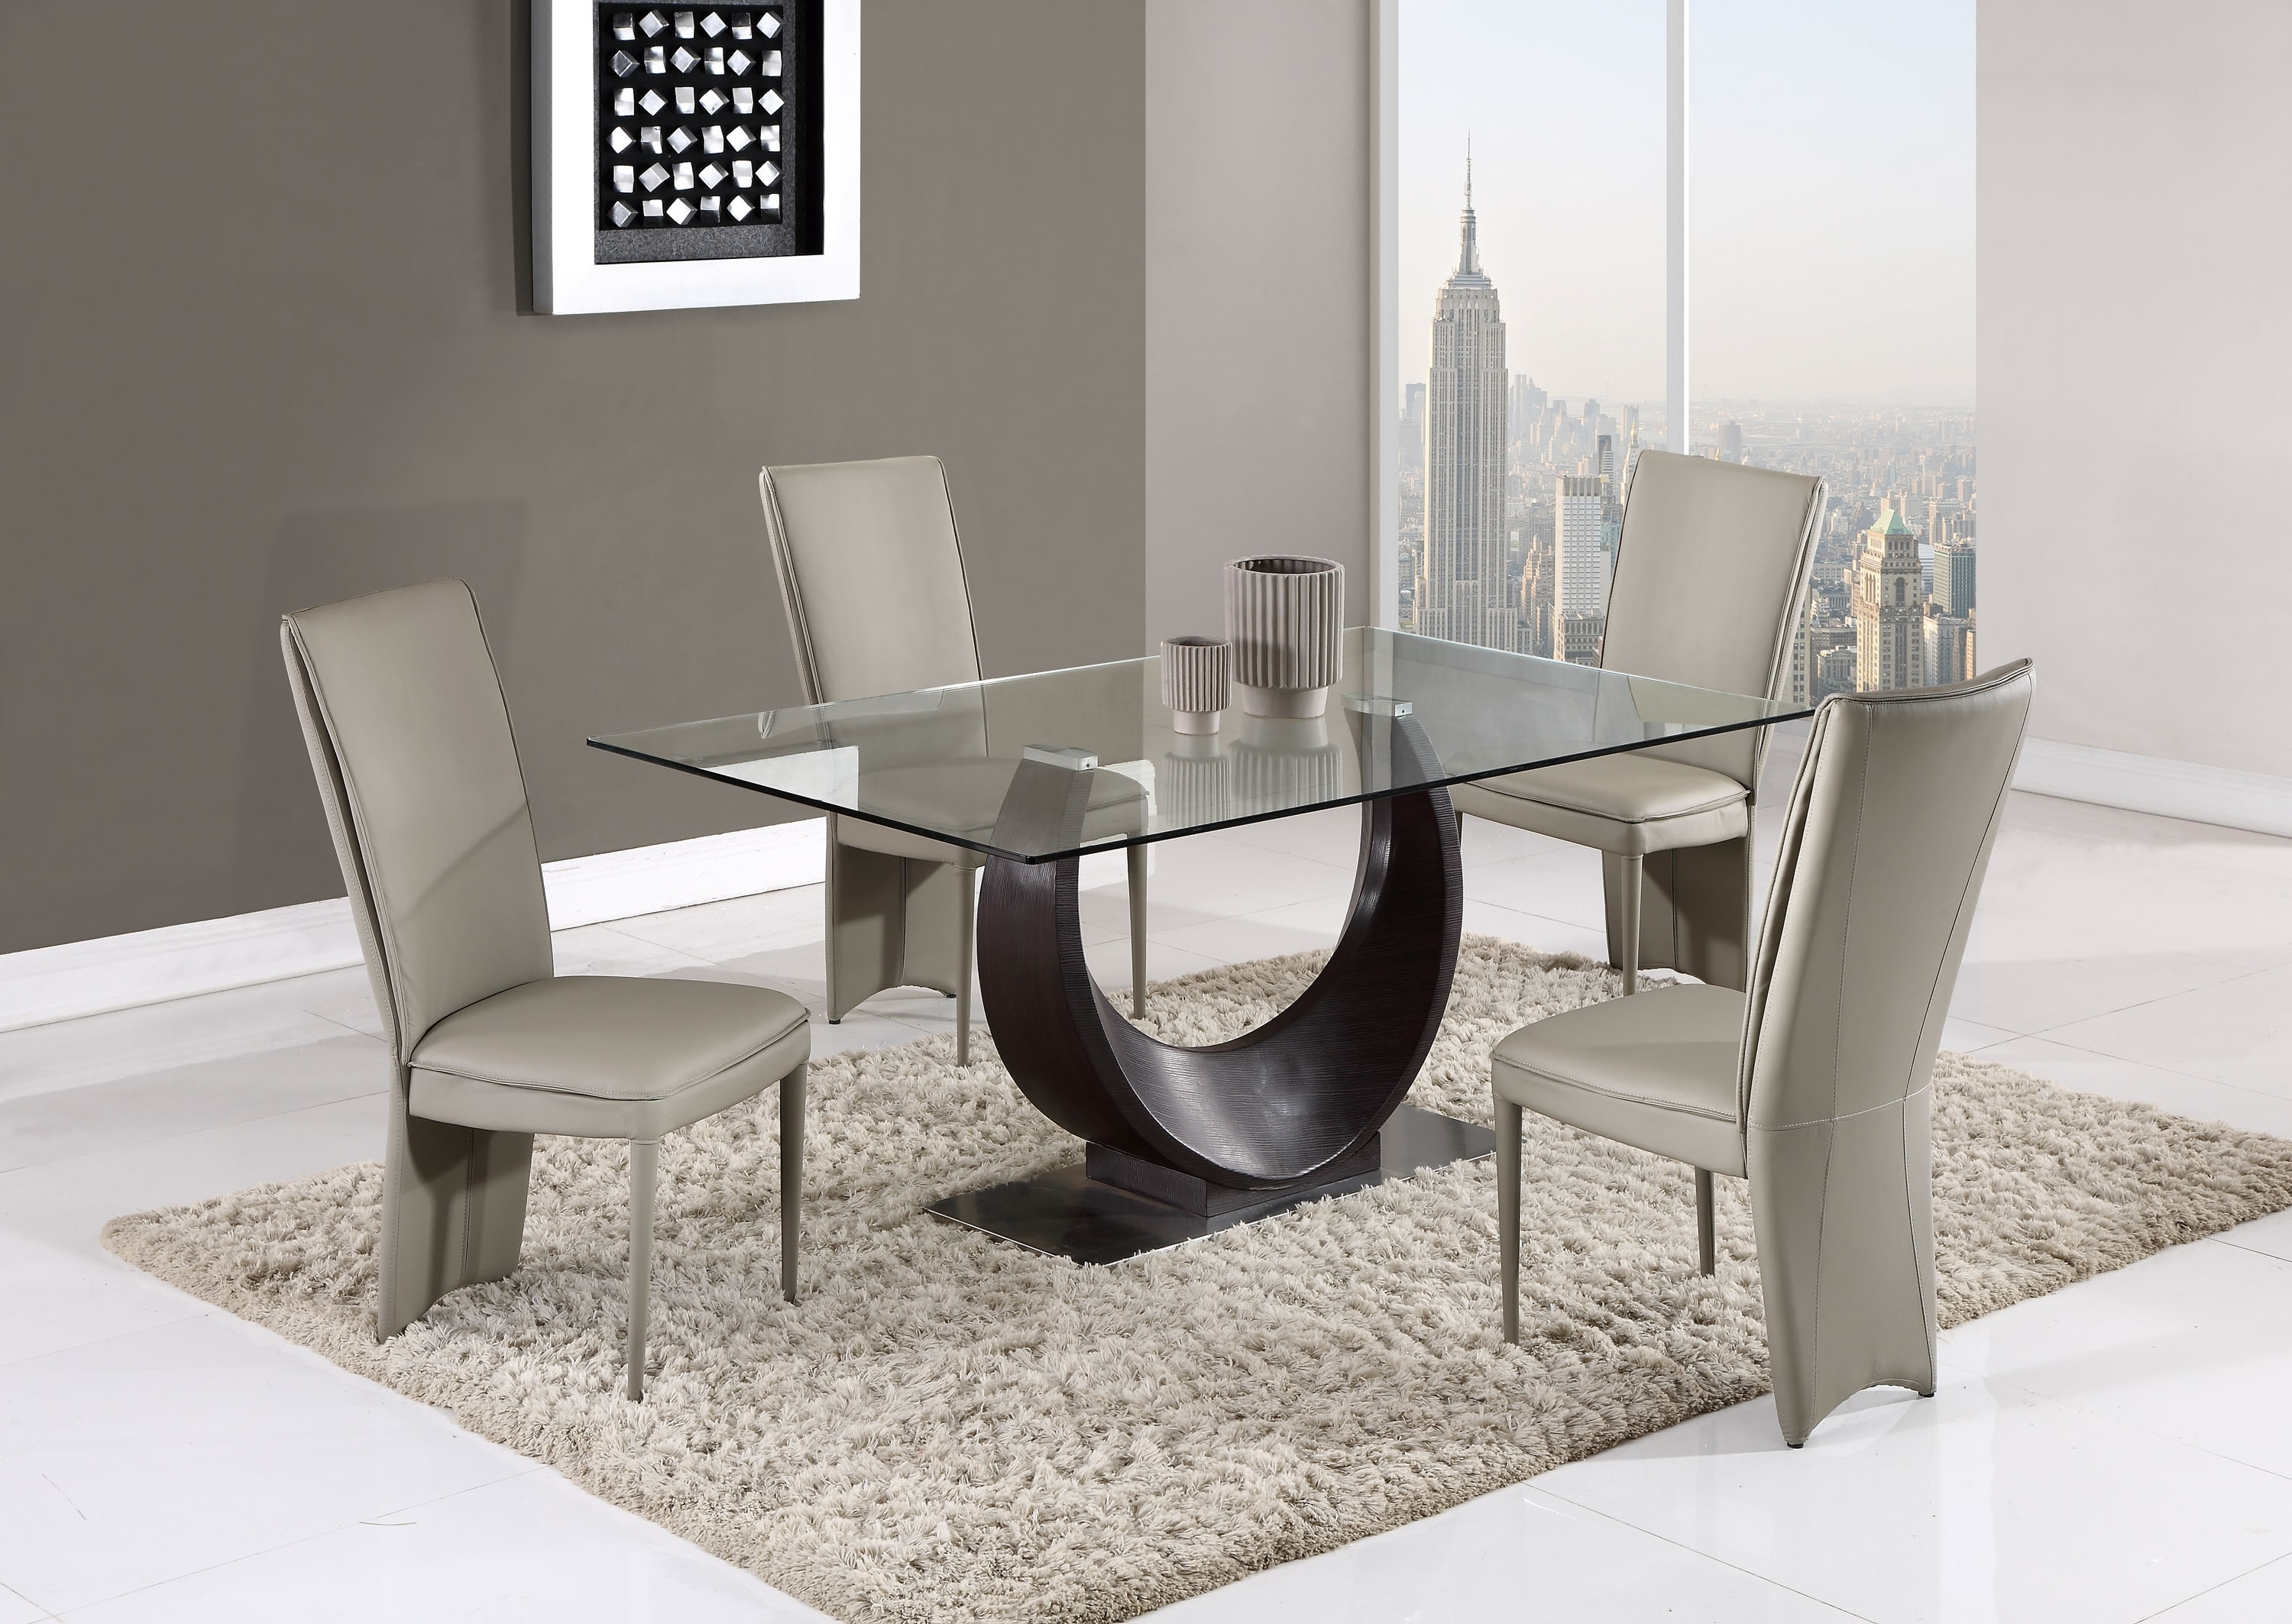 2018 Half Moon Dining Table Sets Pertaining To Contemporary Half Moon Glass Table With Taupe Side Chairs San Jose (View 1 of 25)